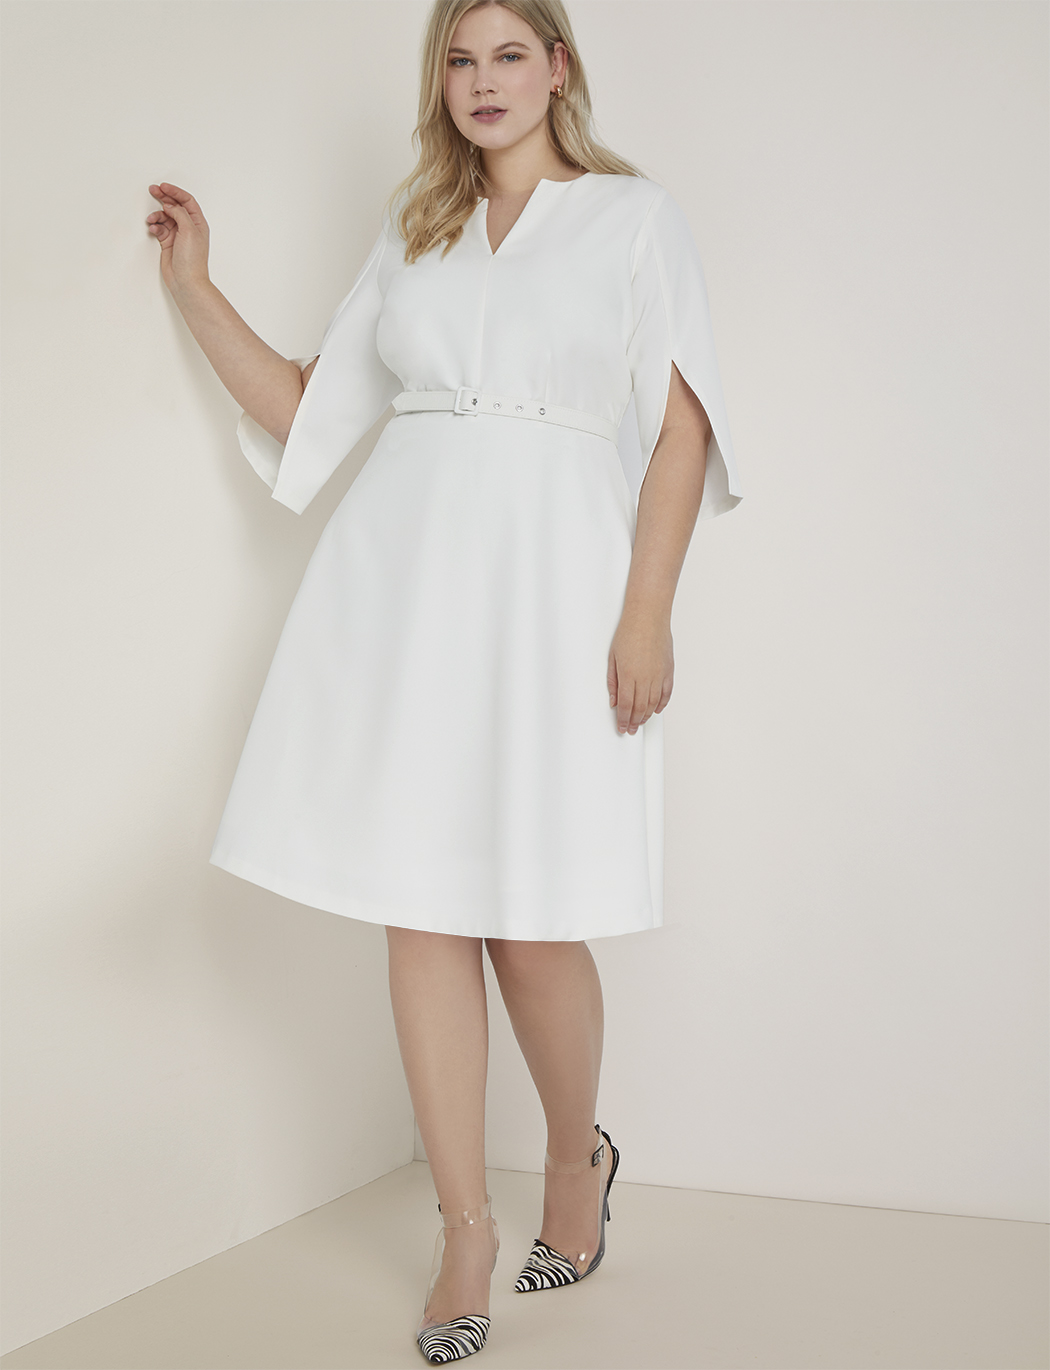 ff71ff825c5 Slit Sleeve Fit and Flare Dress